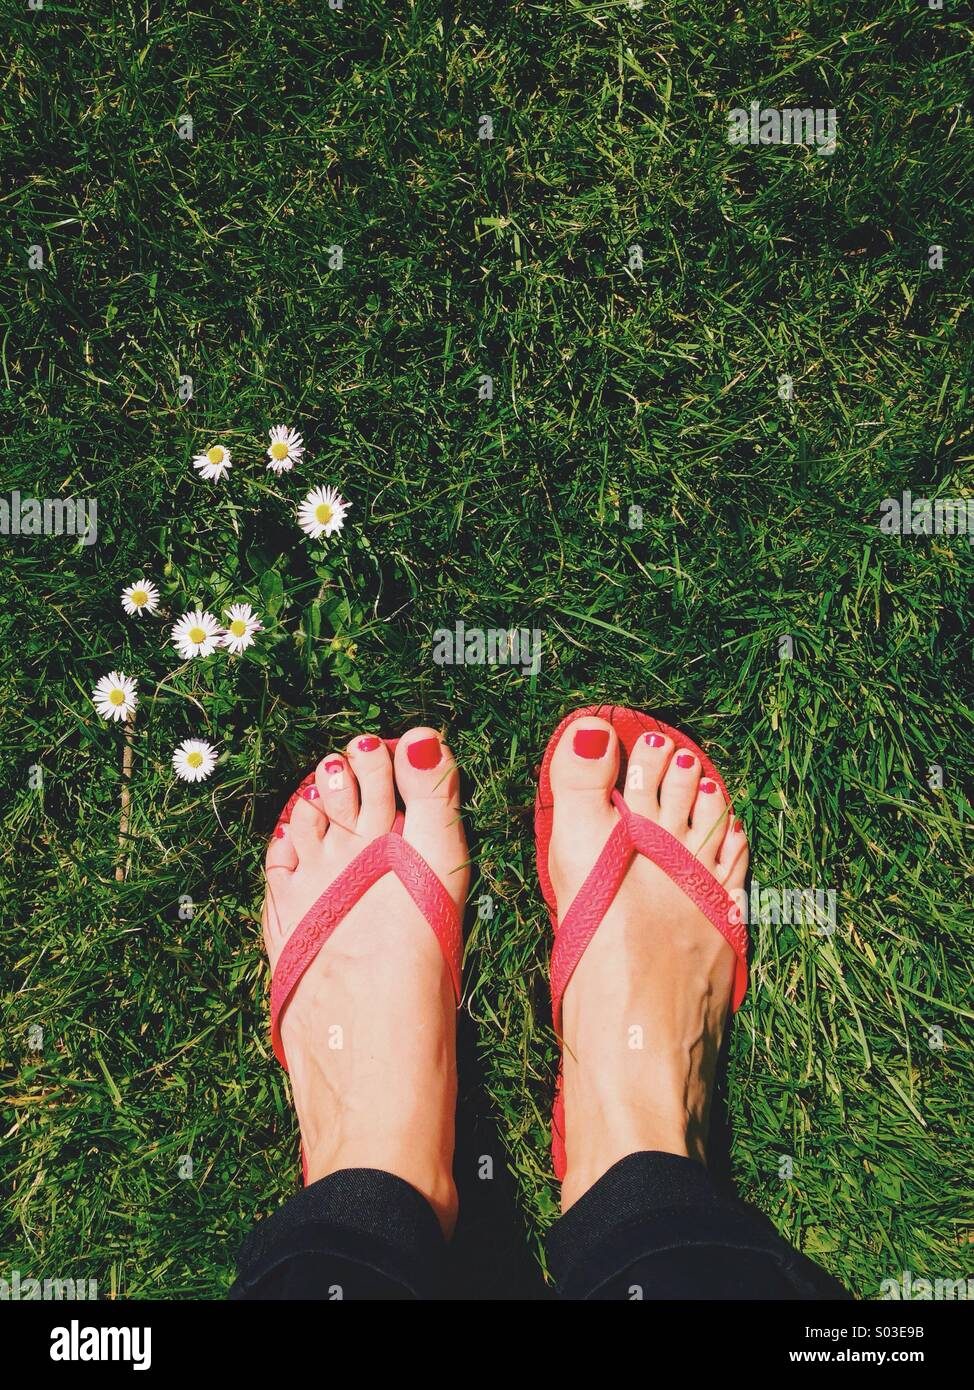 Stepping into spring - Stock Image